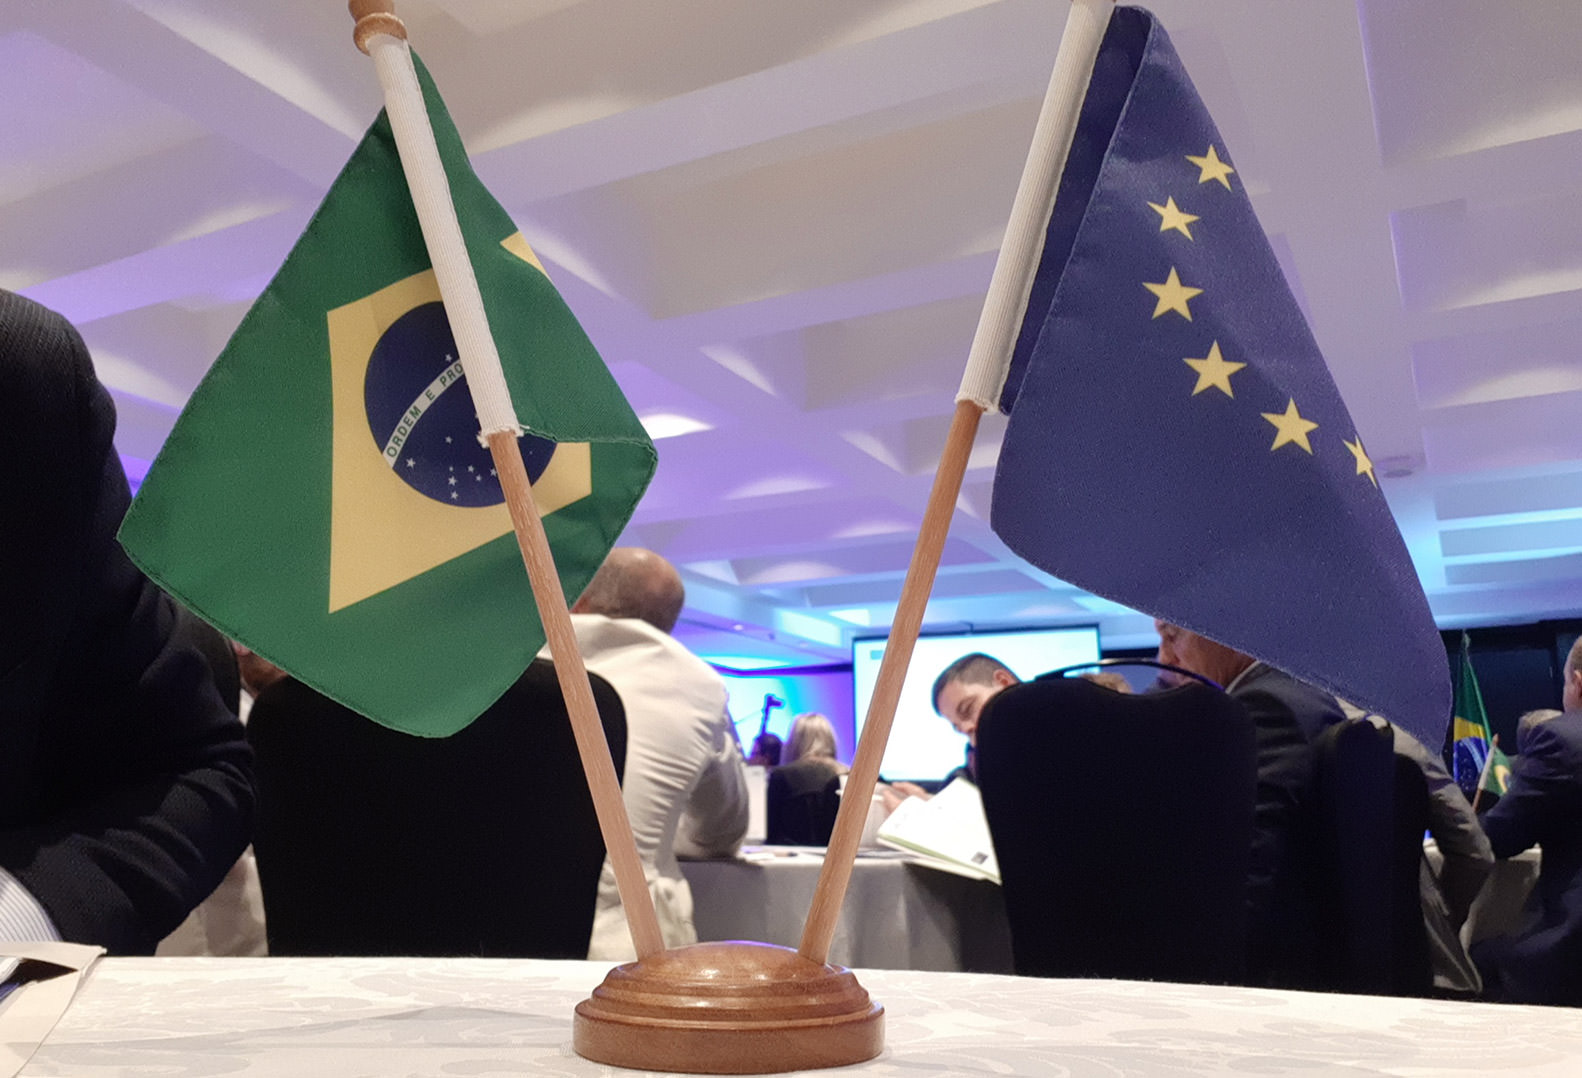 Brazilian Flag and Flag of Europe standing in centre of table